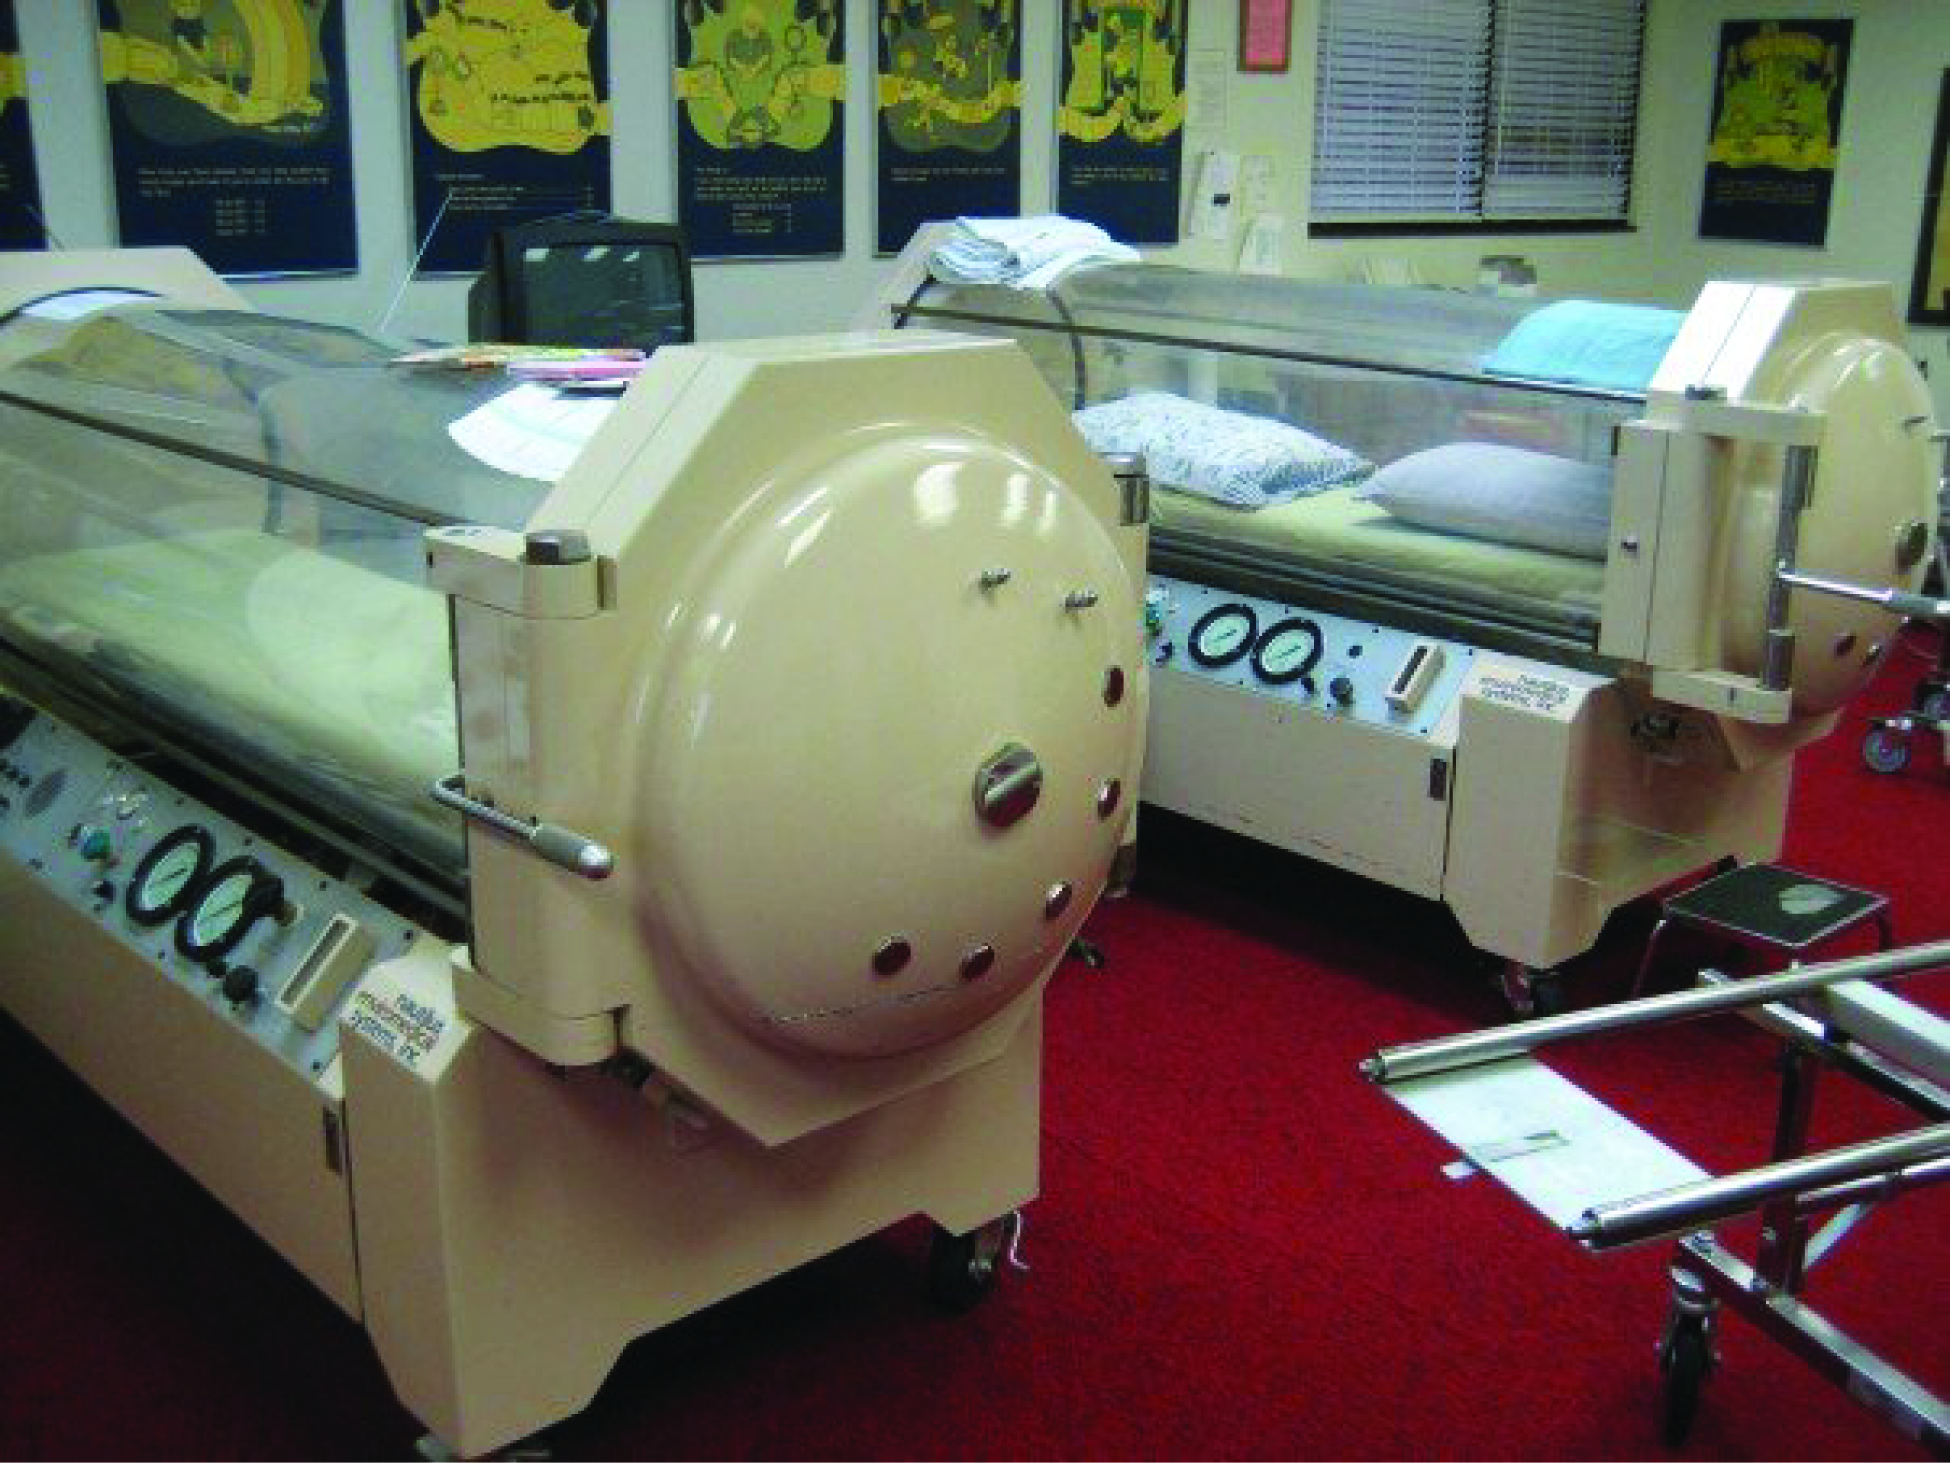 This photo shows two hyperbaric chambers.